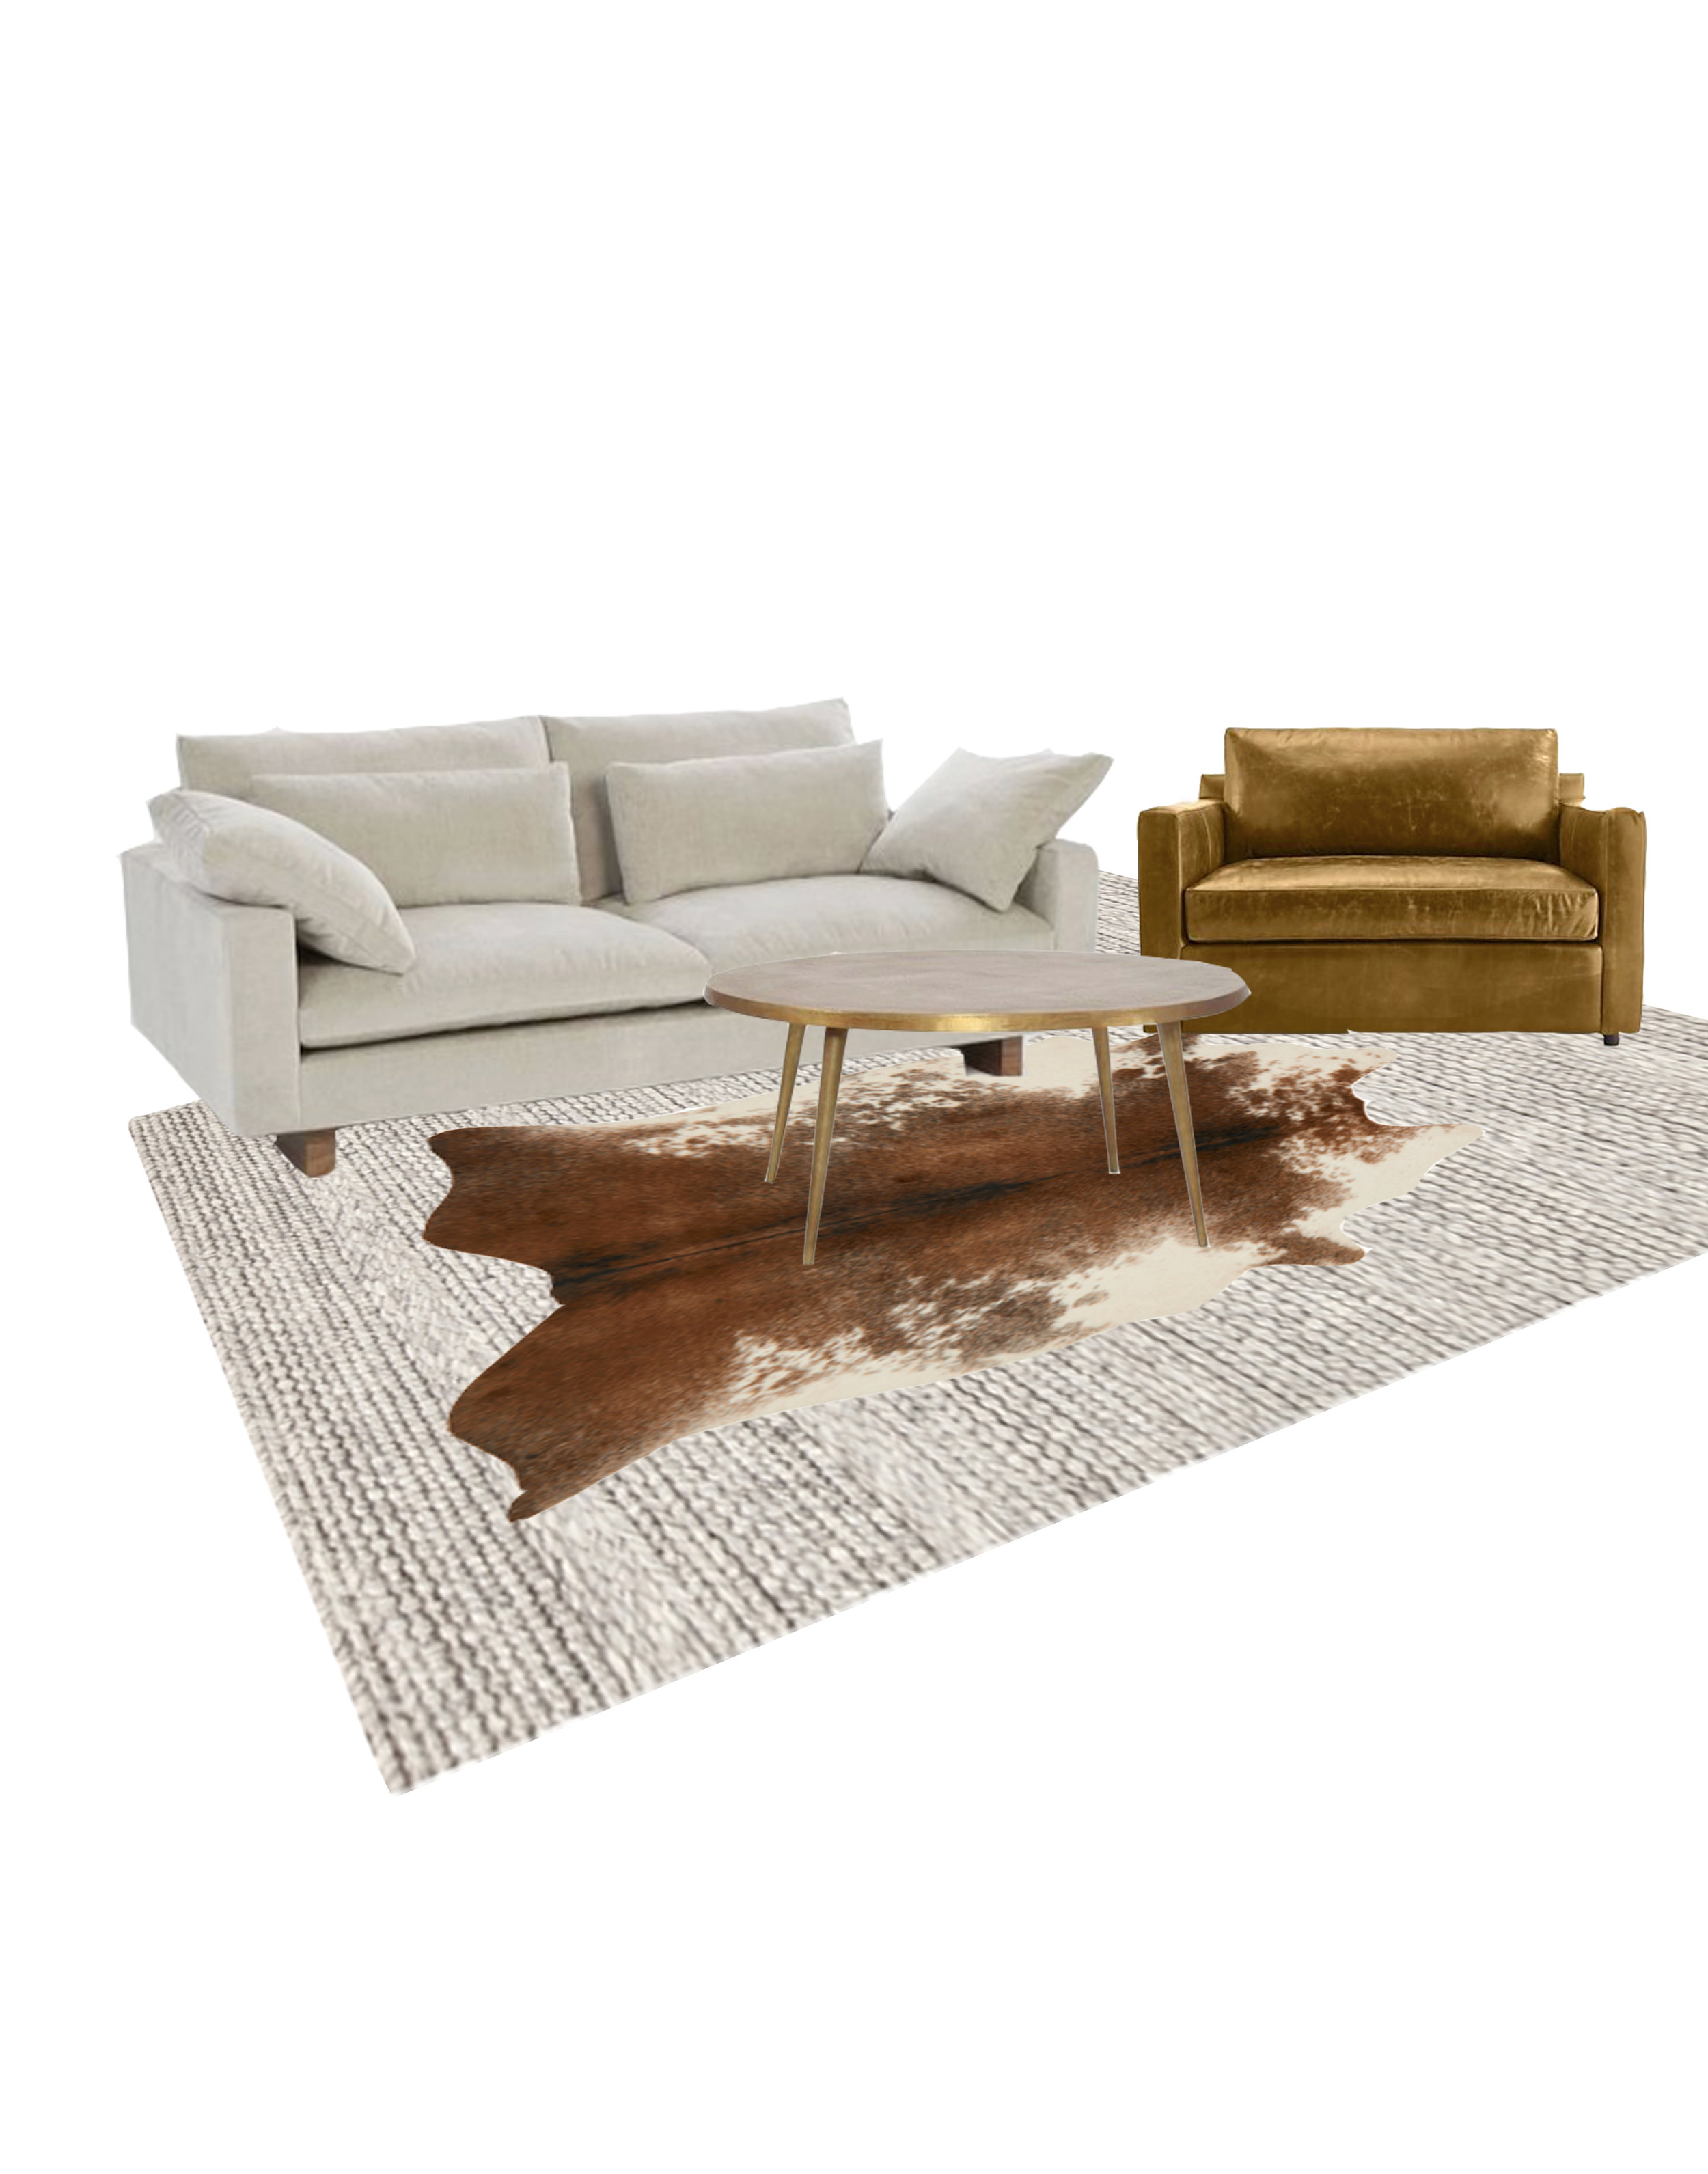 Couch, chair, table, fur rug, and jute rug.